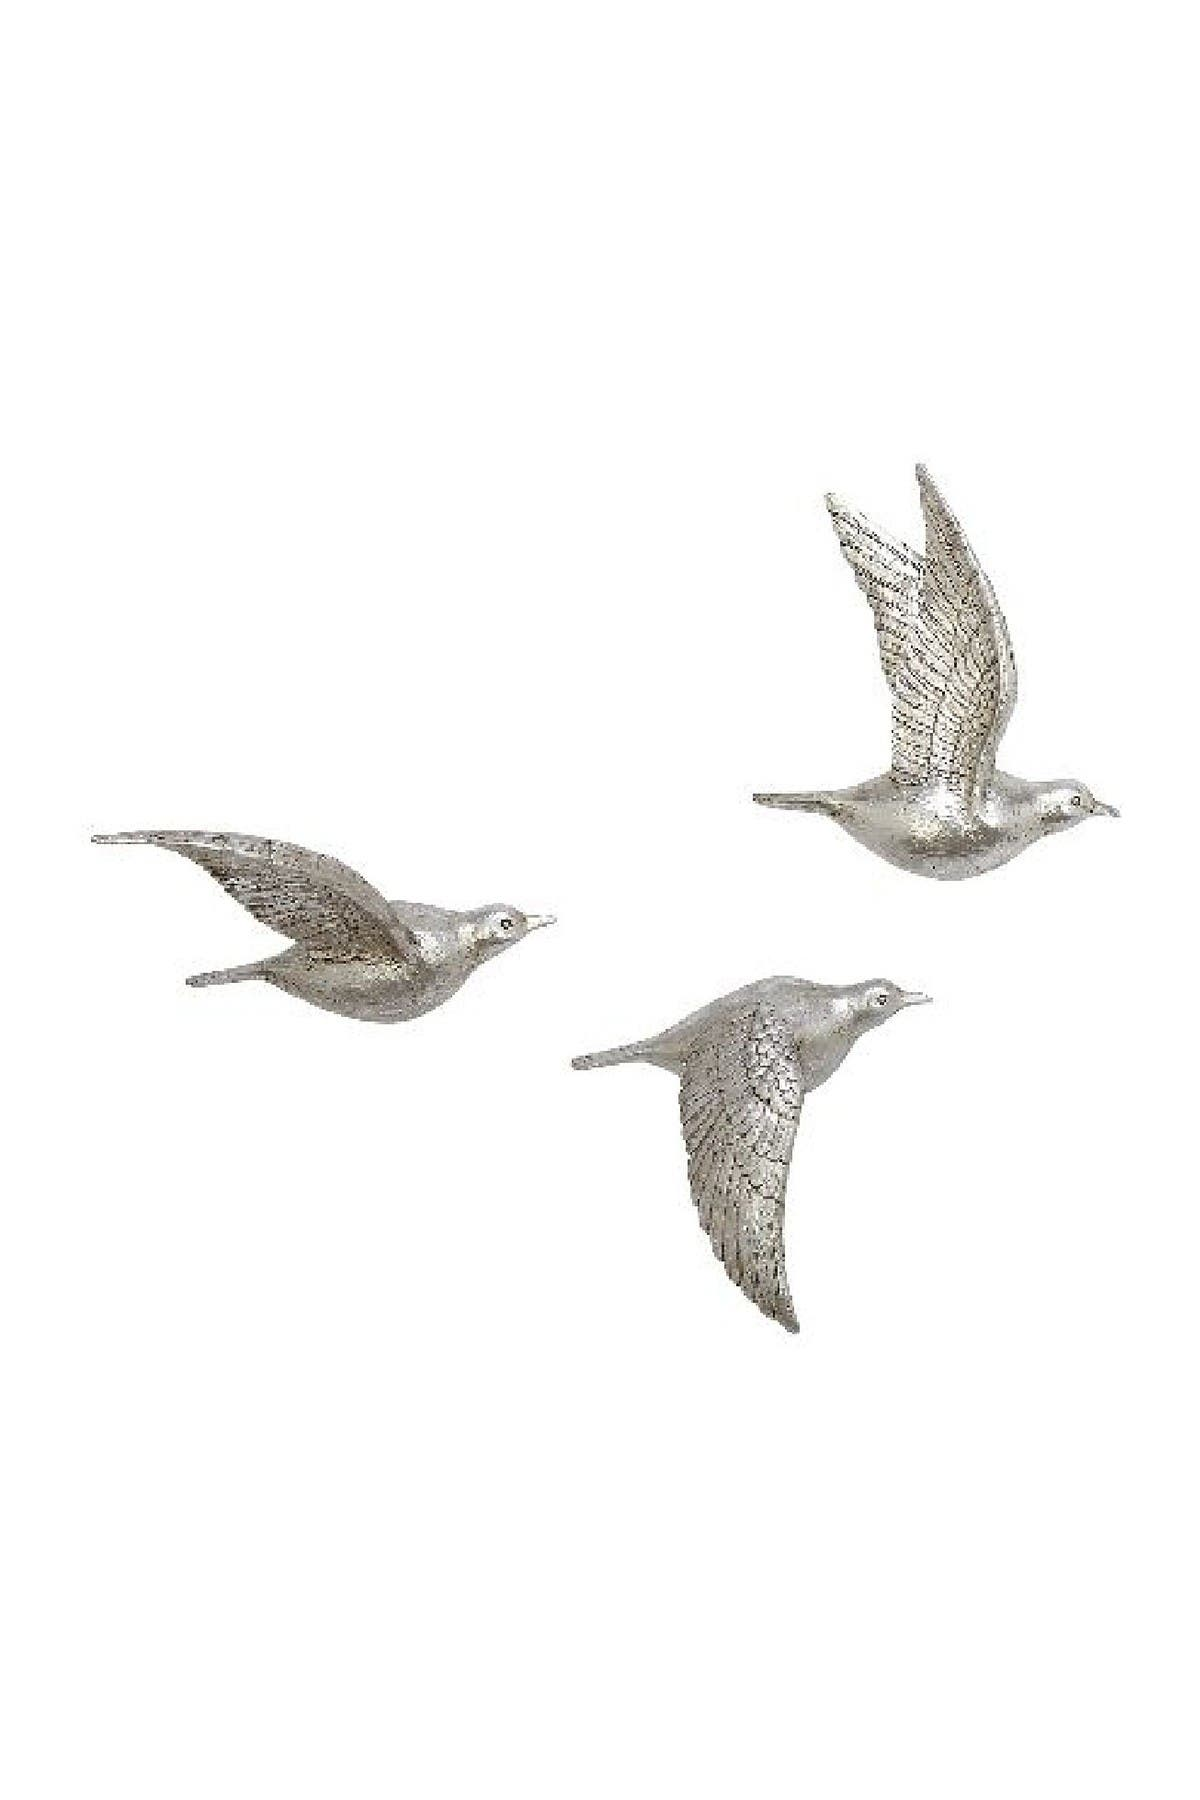 Image of Willow Row Eclectic Resin Birds in Flight Wall Decor - Set of 3